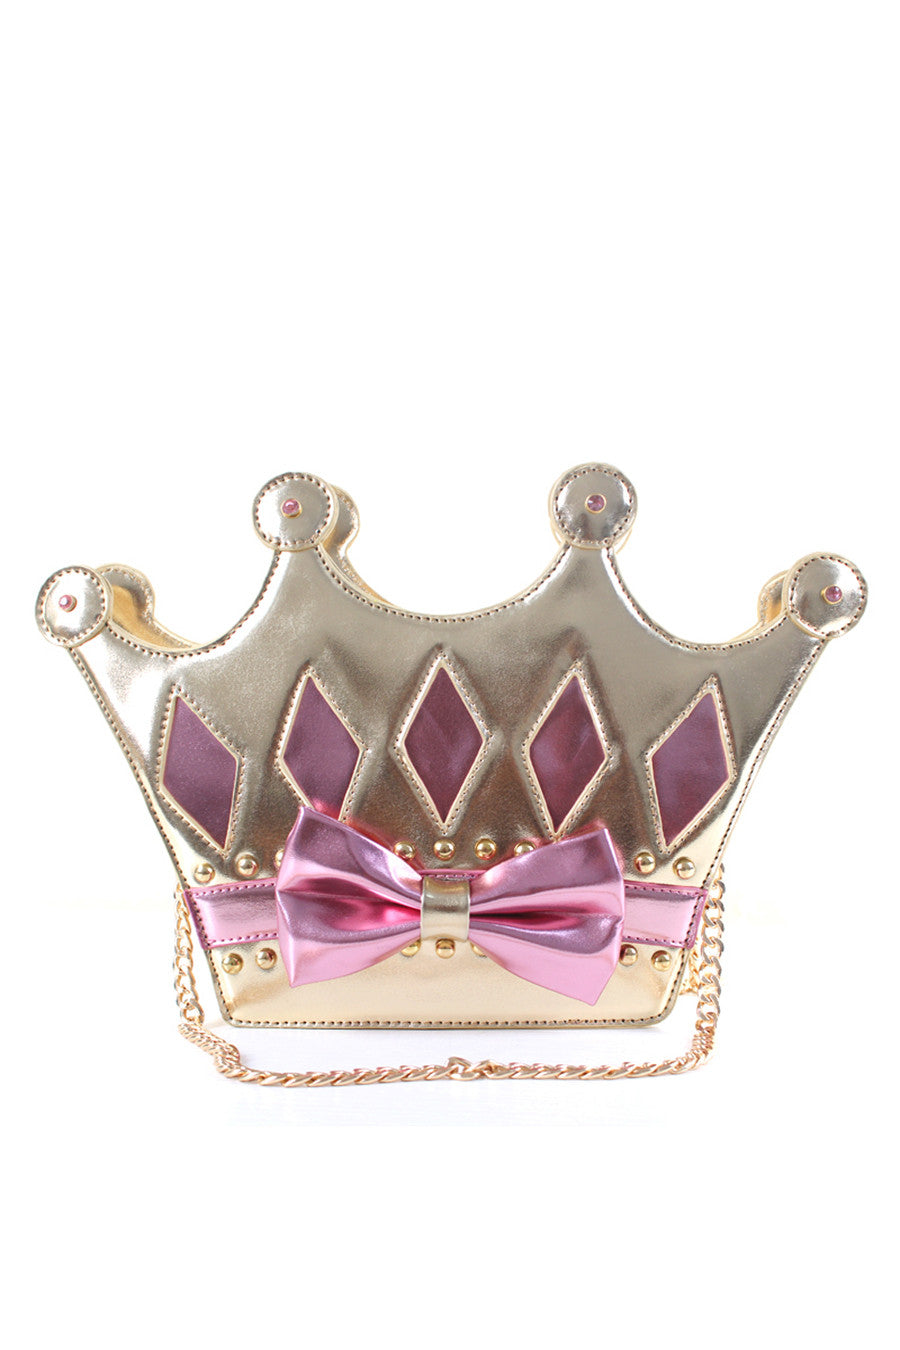 Gold And Pink Crown Chain Bag